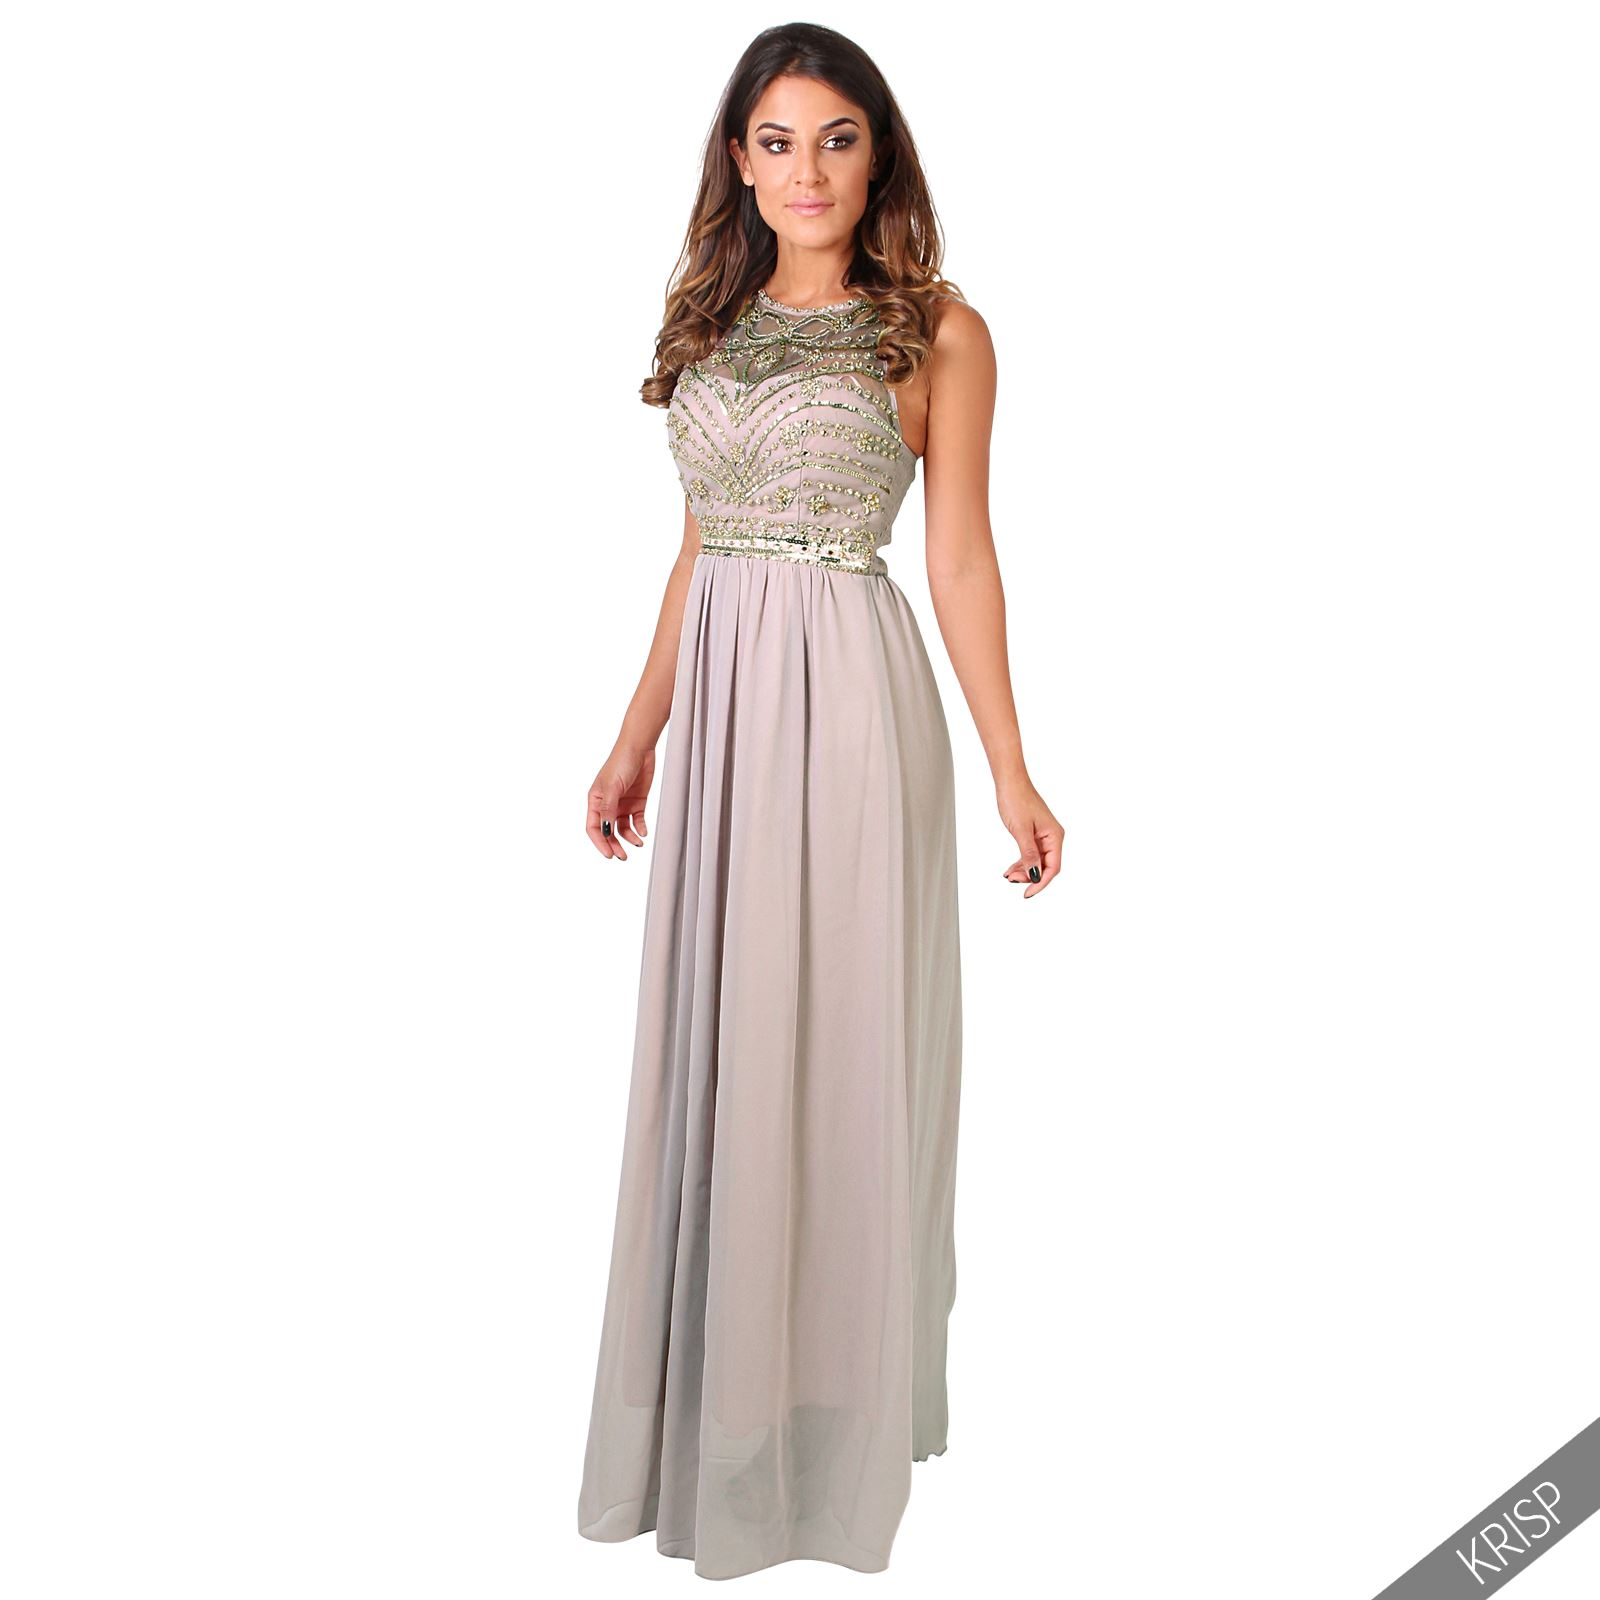 Damen Maxi Strass Ballkleid Empire Cocktail Dinner Hochzeit Party ...